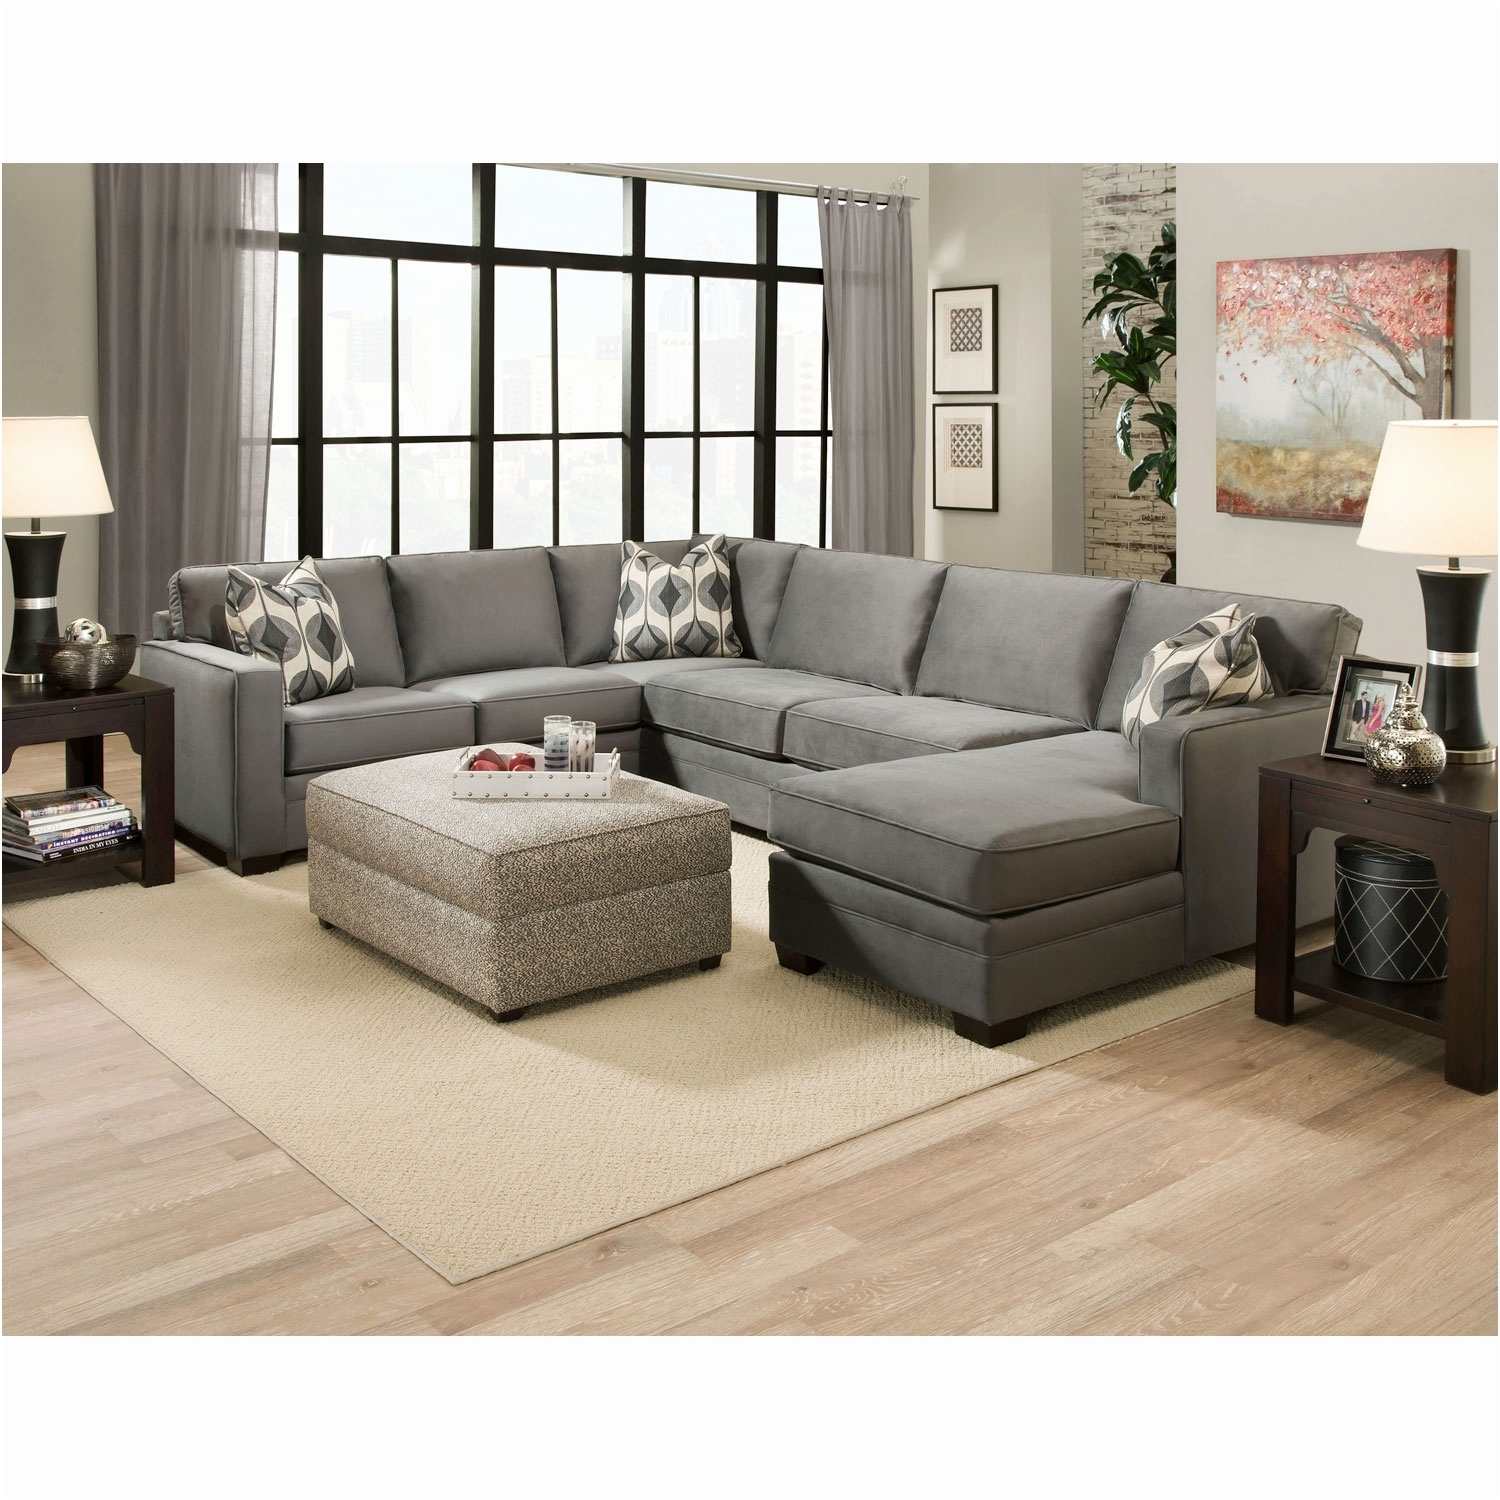 Trendy Lovely Sofa Sectionals On Sale Fresh – Sofa Furnitures (View 4 of 15)